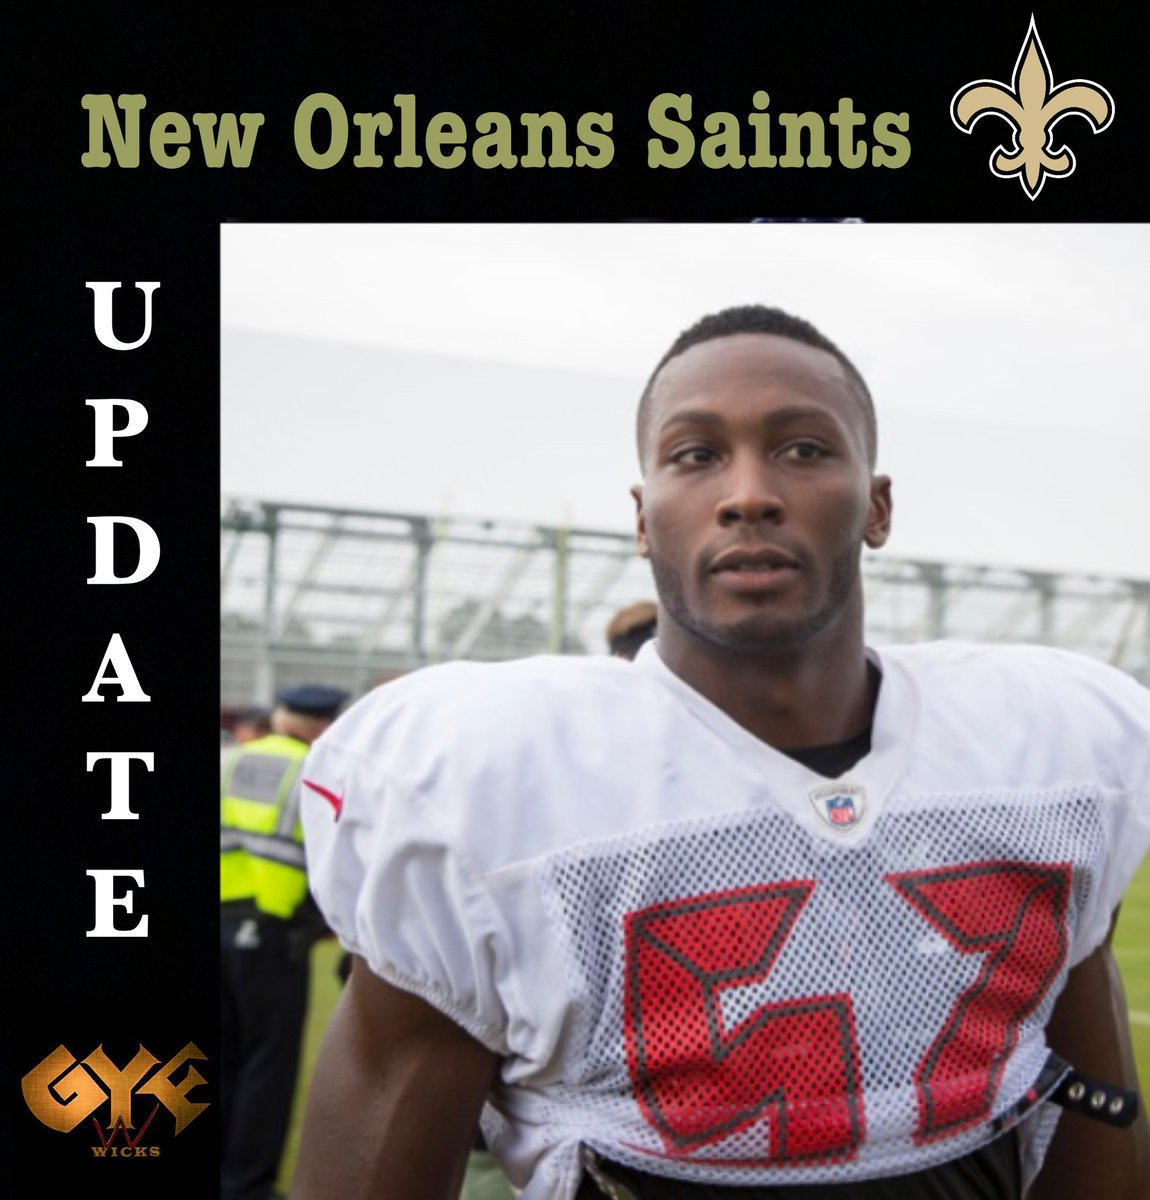 The @Saints have placed OLB Noah Spence on the Reserve/Non-Football injury list due to a torn acl per @RapSheet #nfl #nflnews #nflfootball #nflsunday #nflnetwork #nflupdates #nflseason #nflgameday #nfloffseason #nfllive #nflnow #nflkickoffpic.twitter.com/MJejmLJAqV